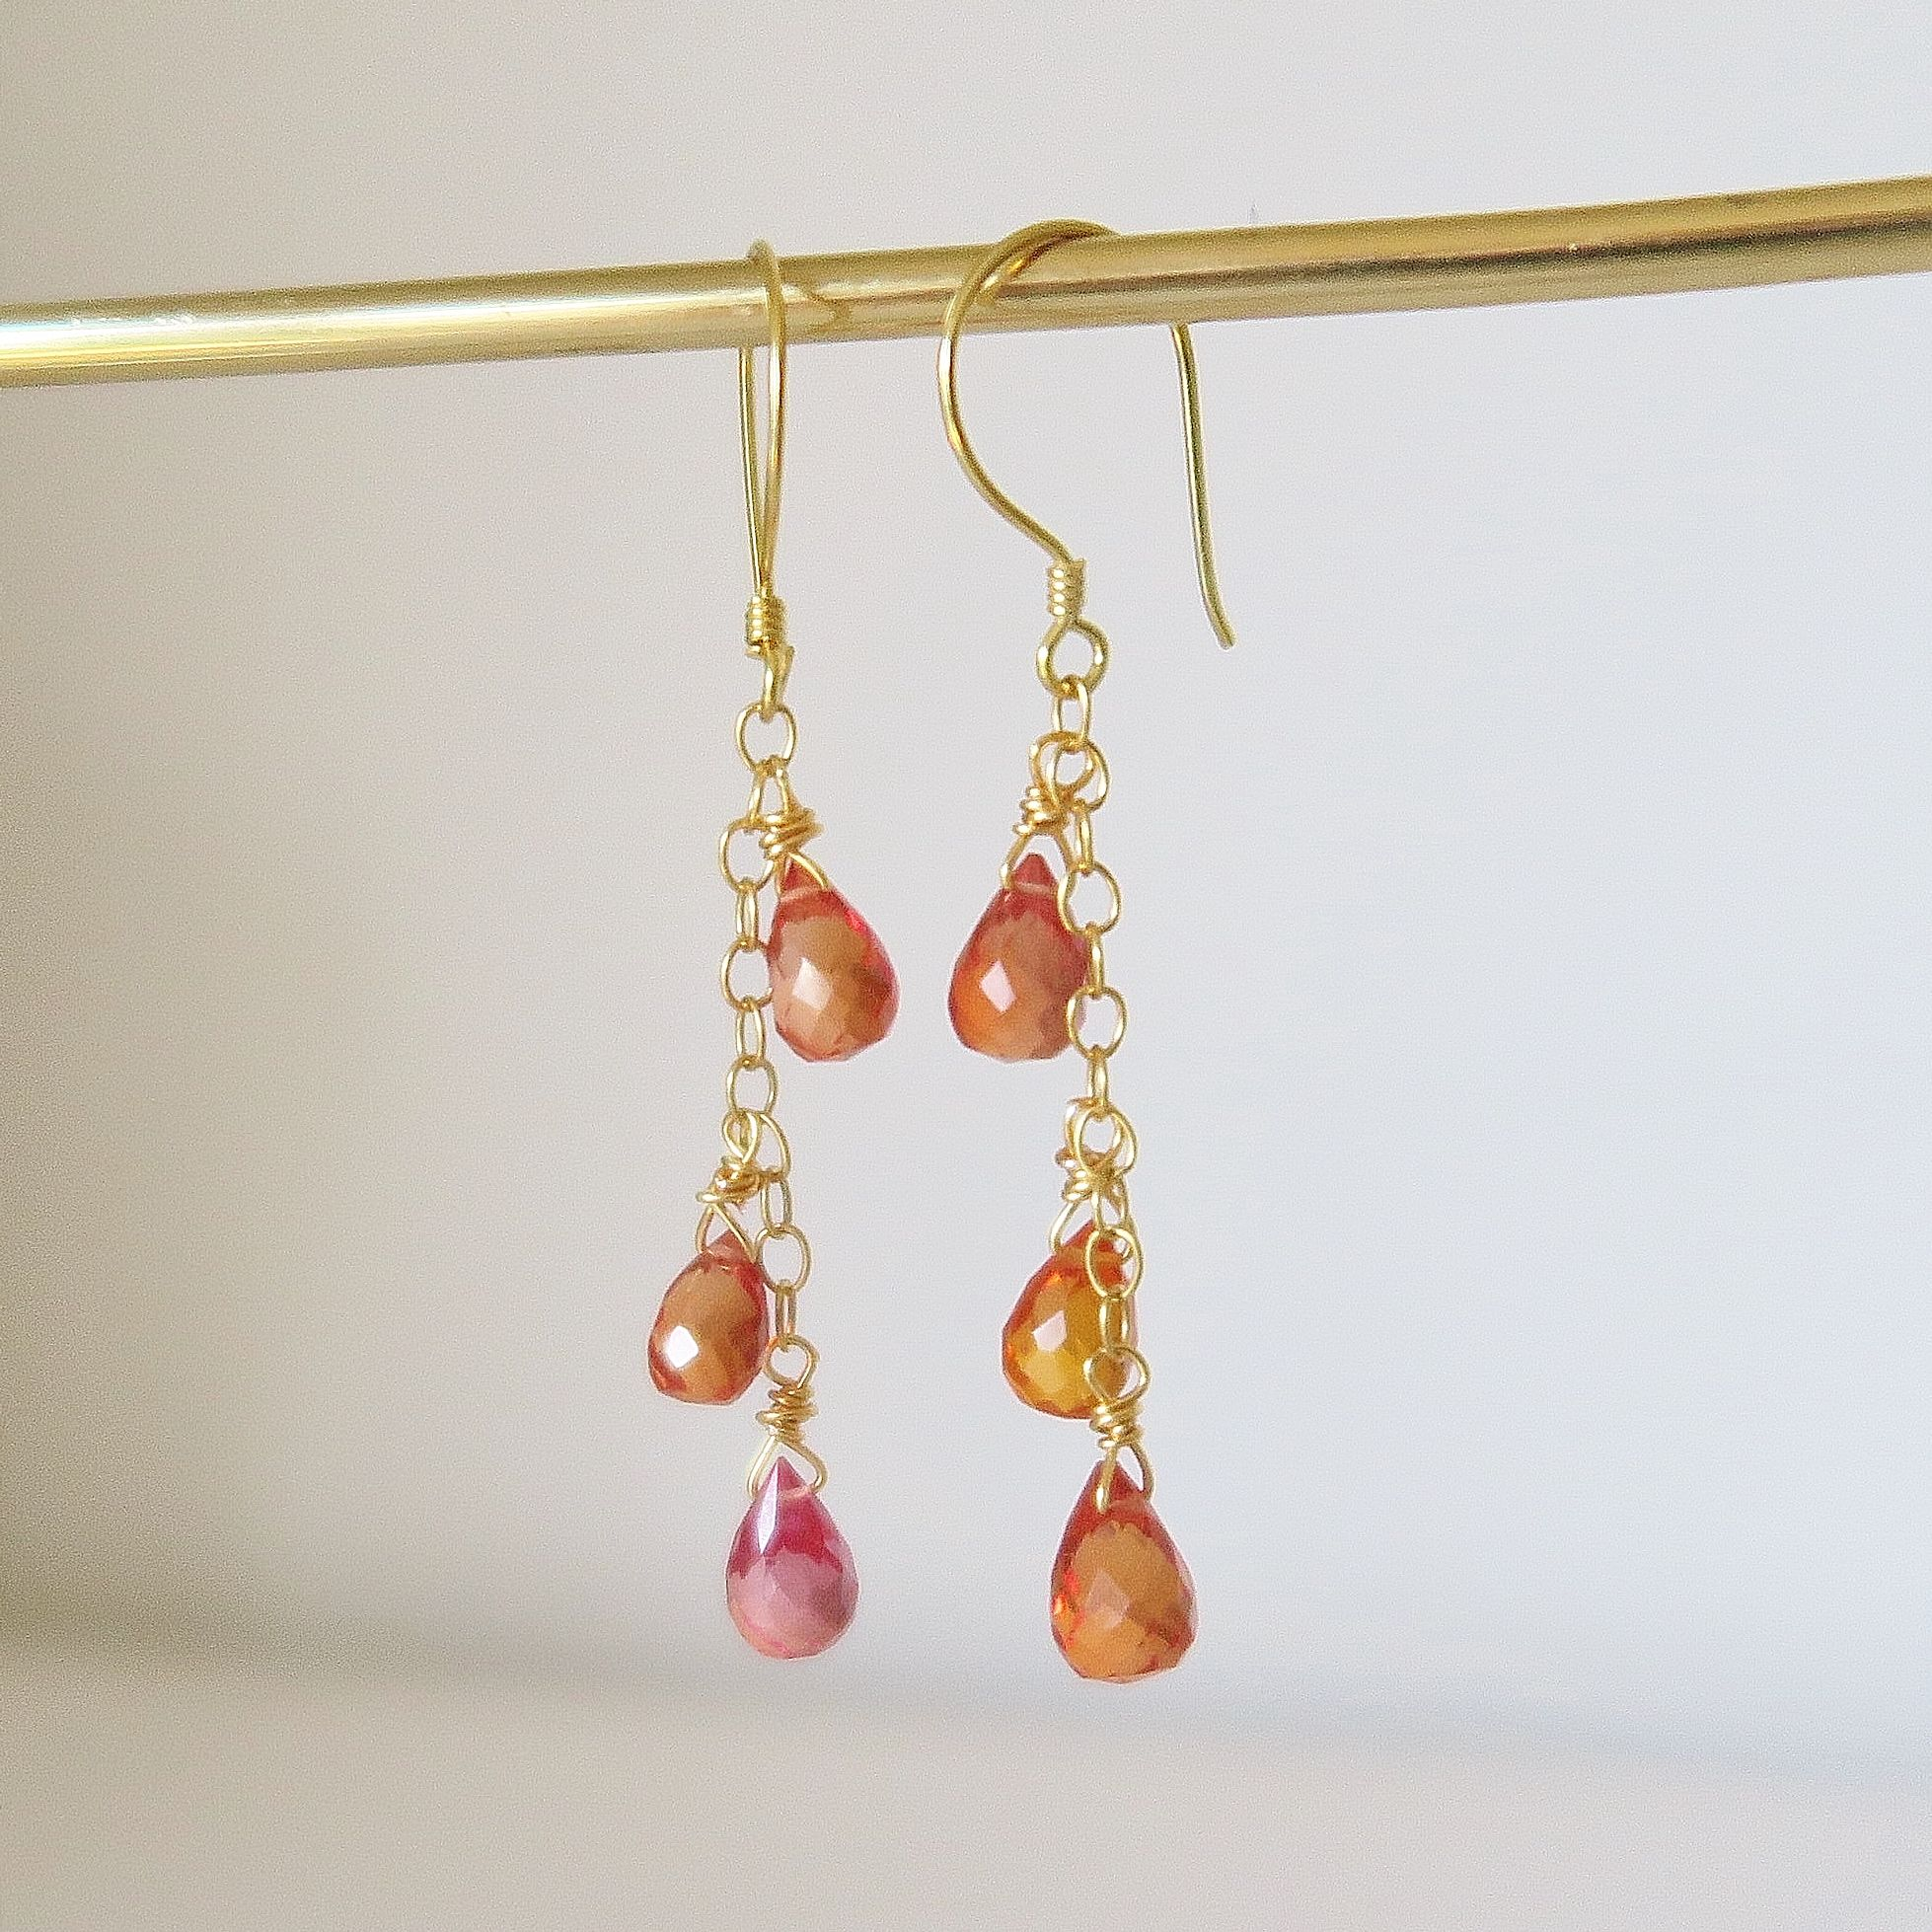 earrings white padparadscha hold pin sapphire